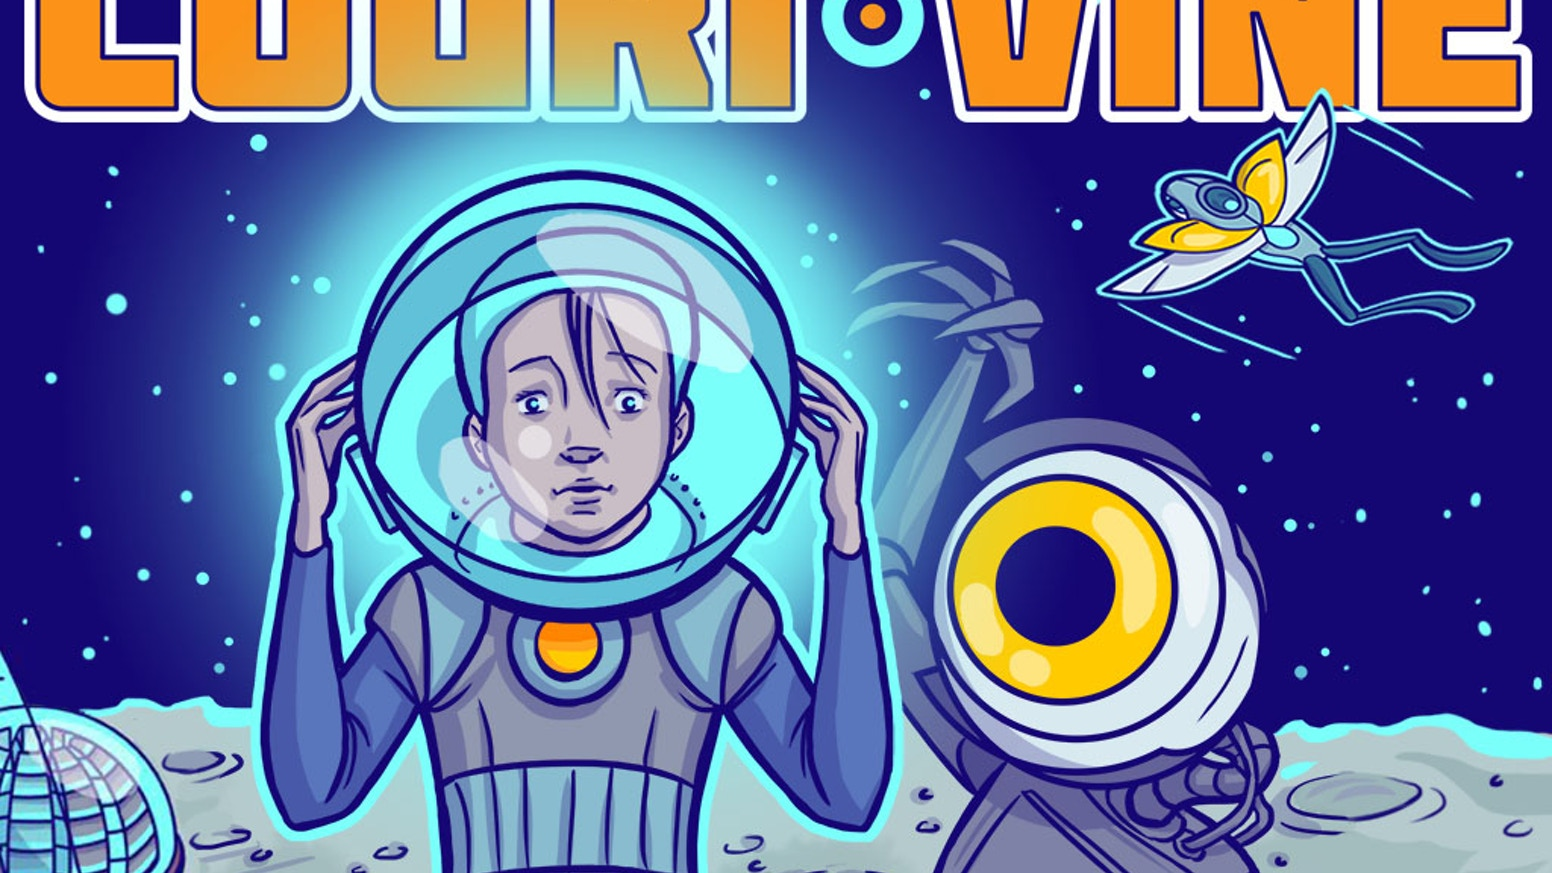 We funded the printing of the first book in our new comic book series, Couri Vine, a sci-fi adventure story on the Moon!